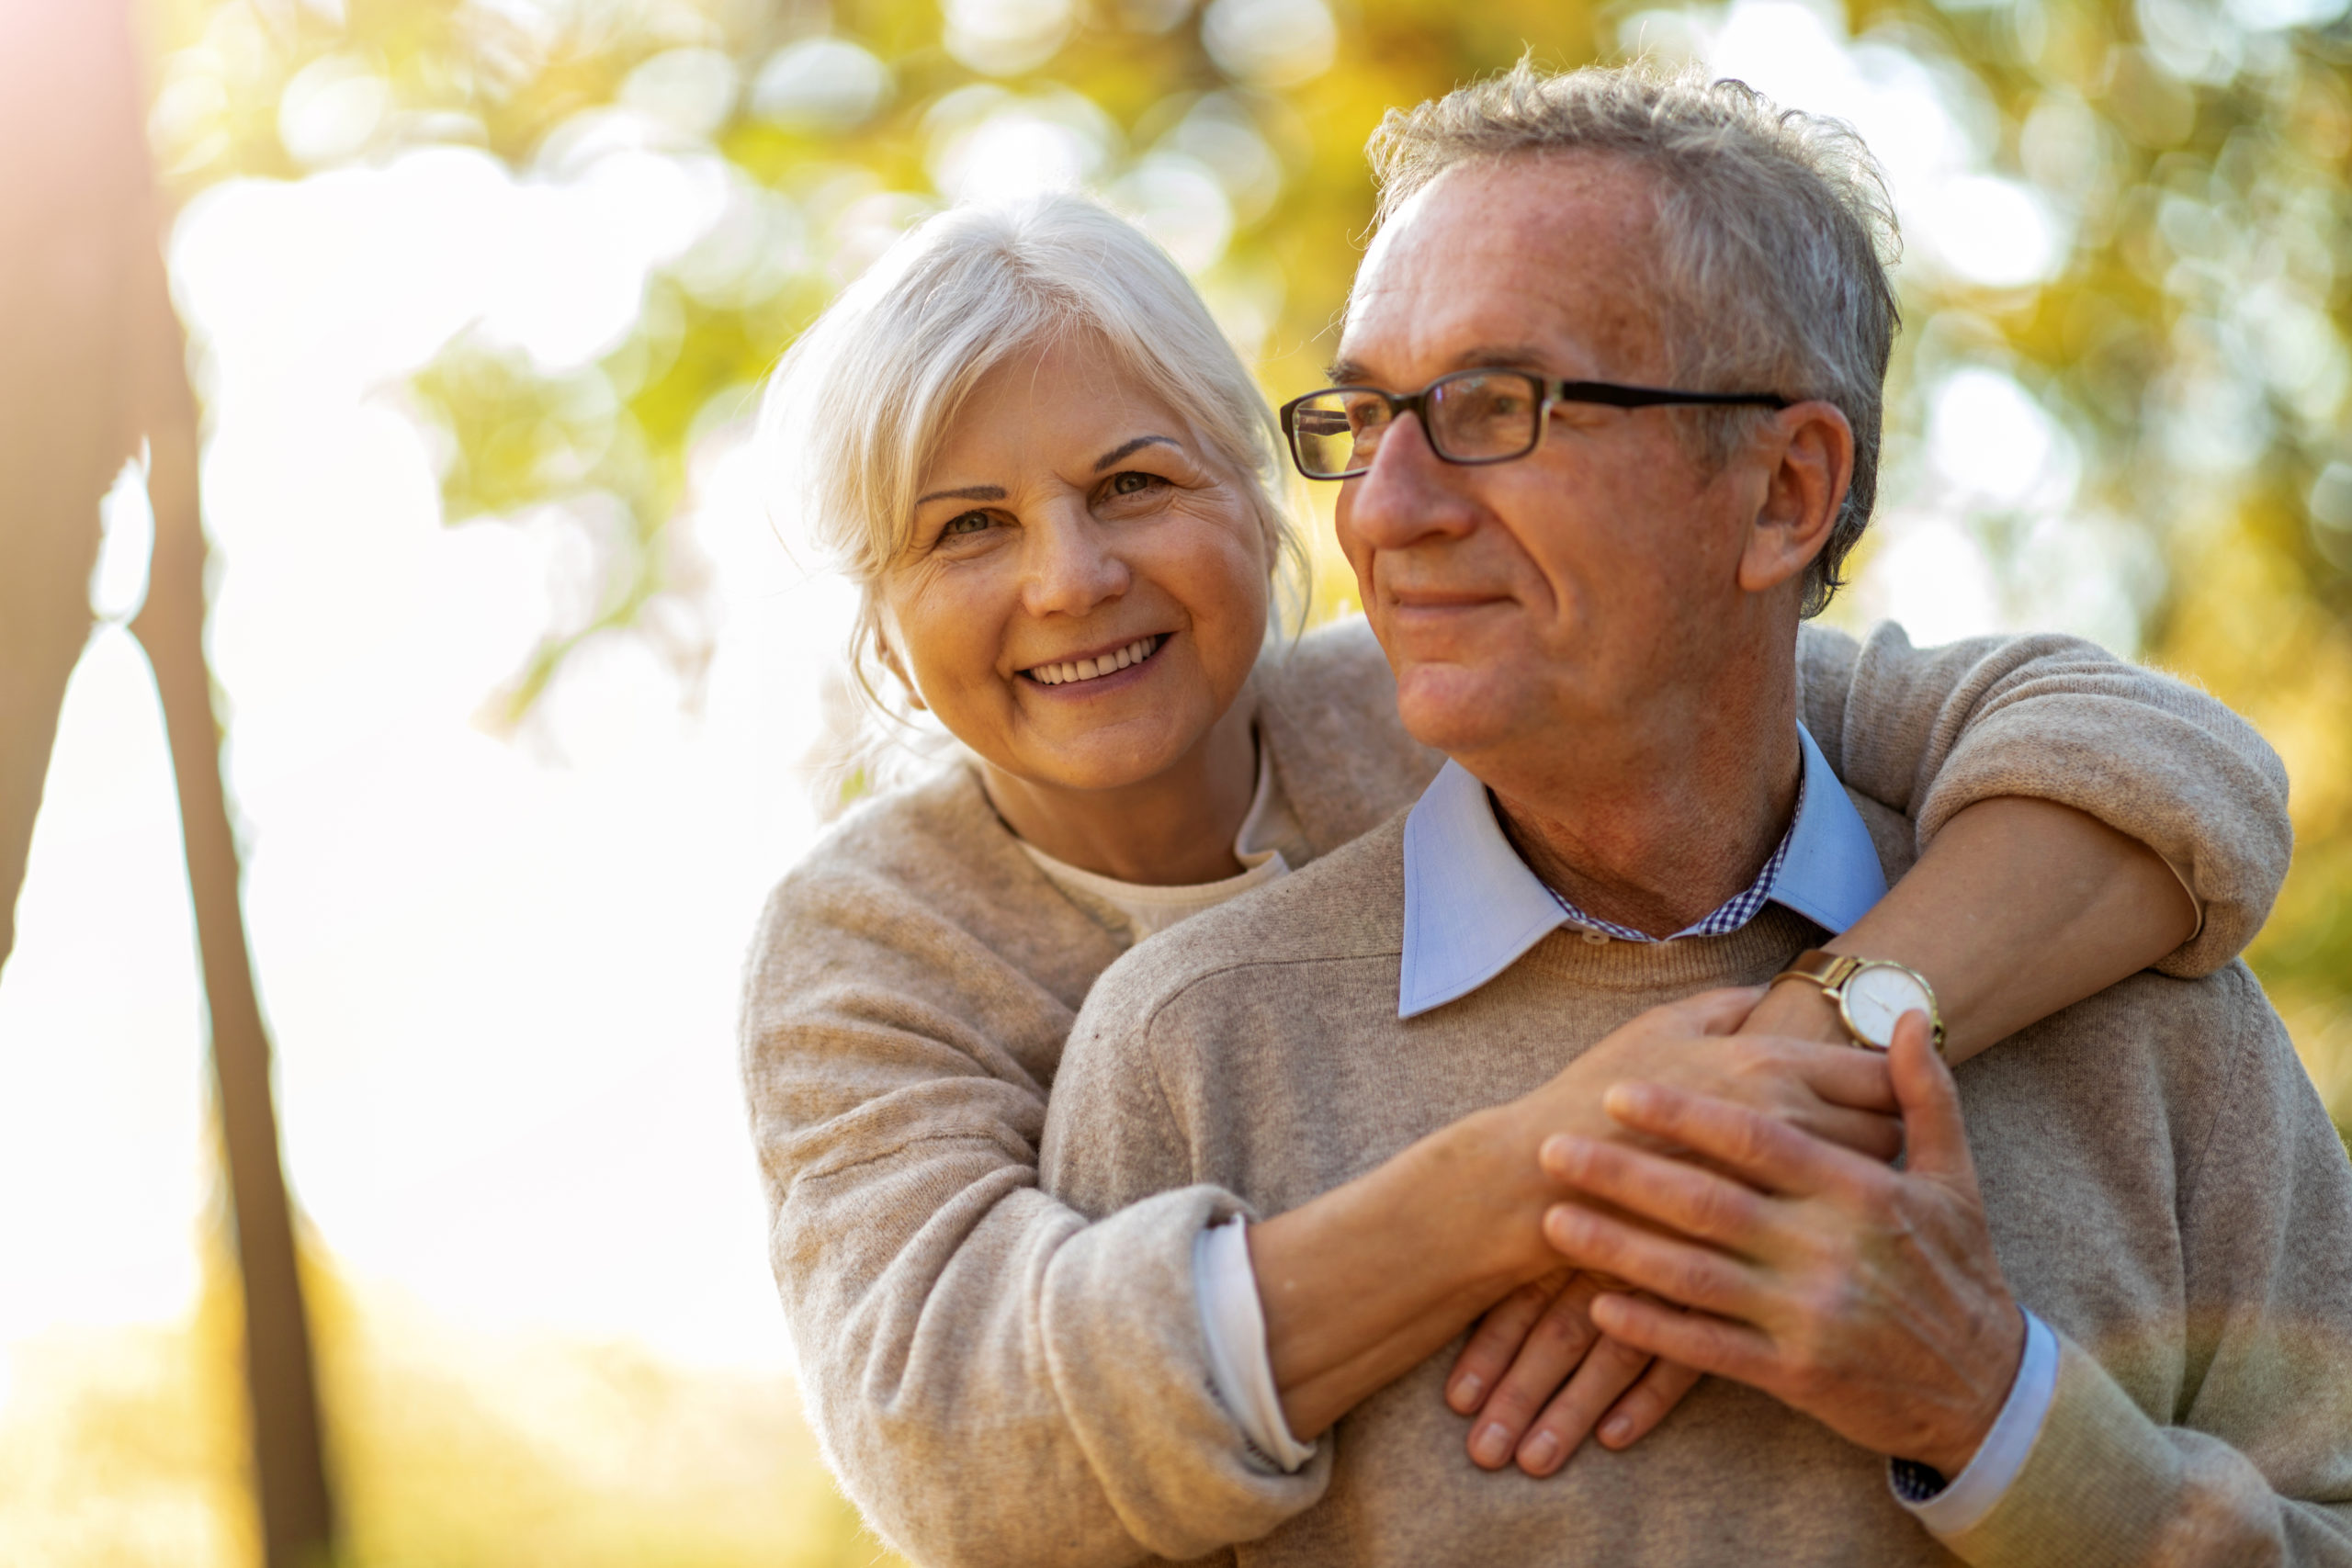 6 Healthy Habits for Aging 1